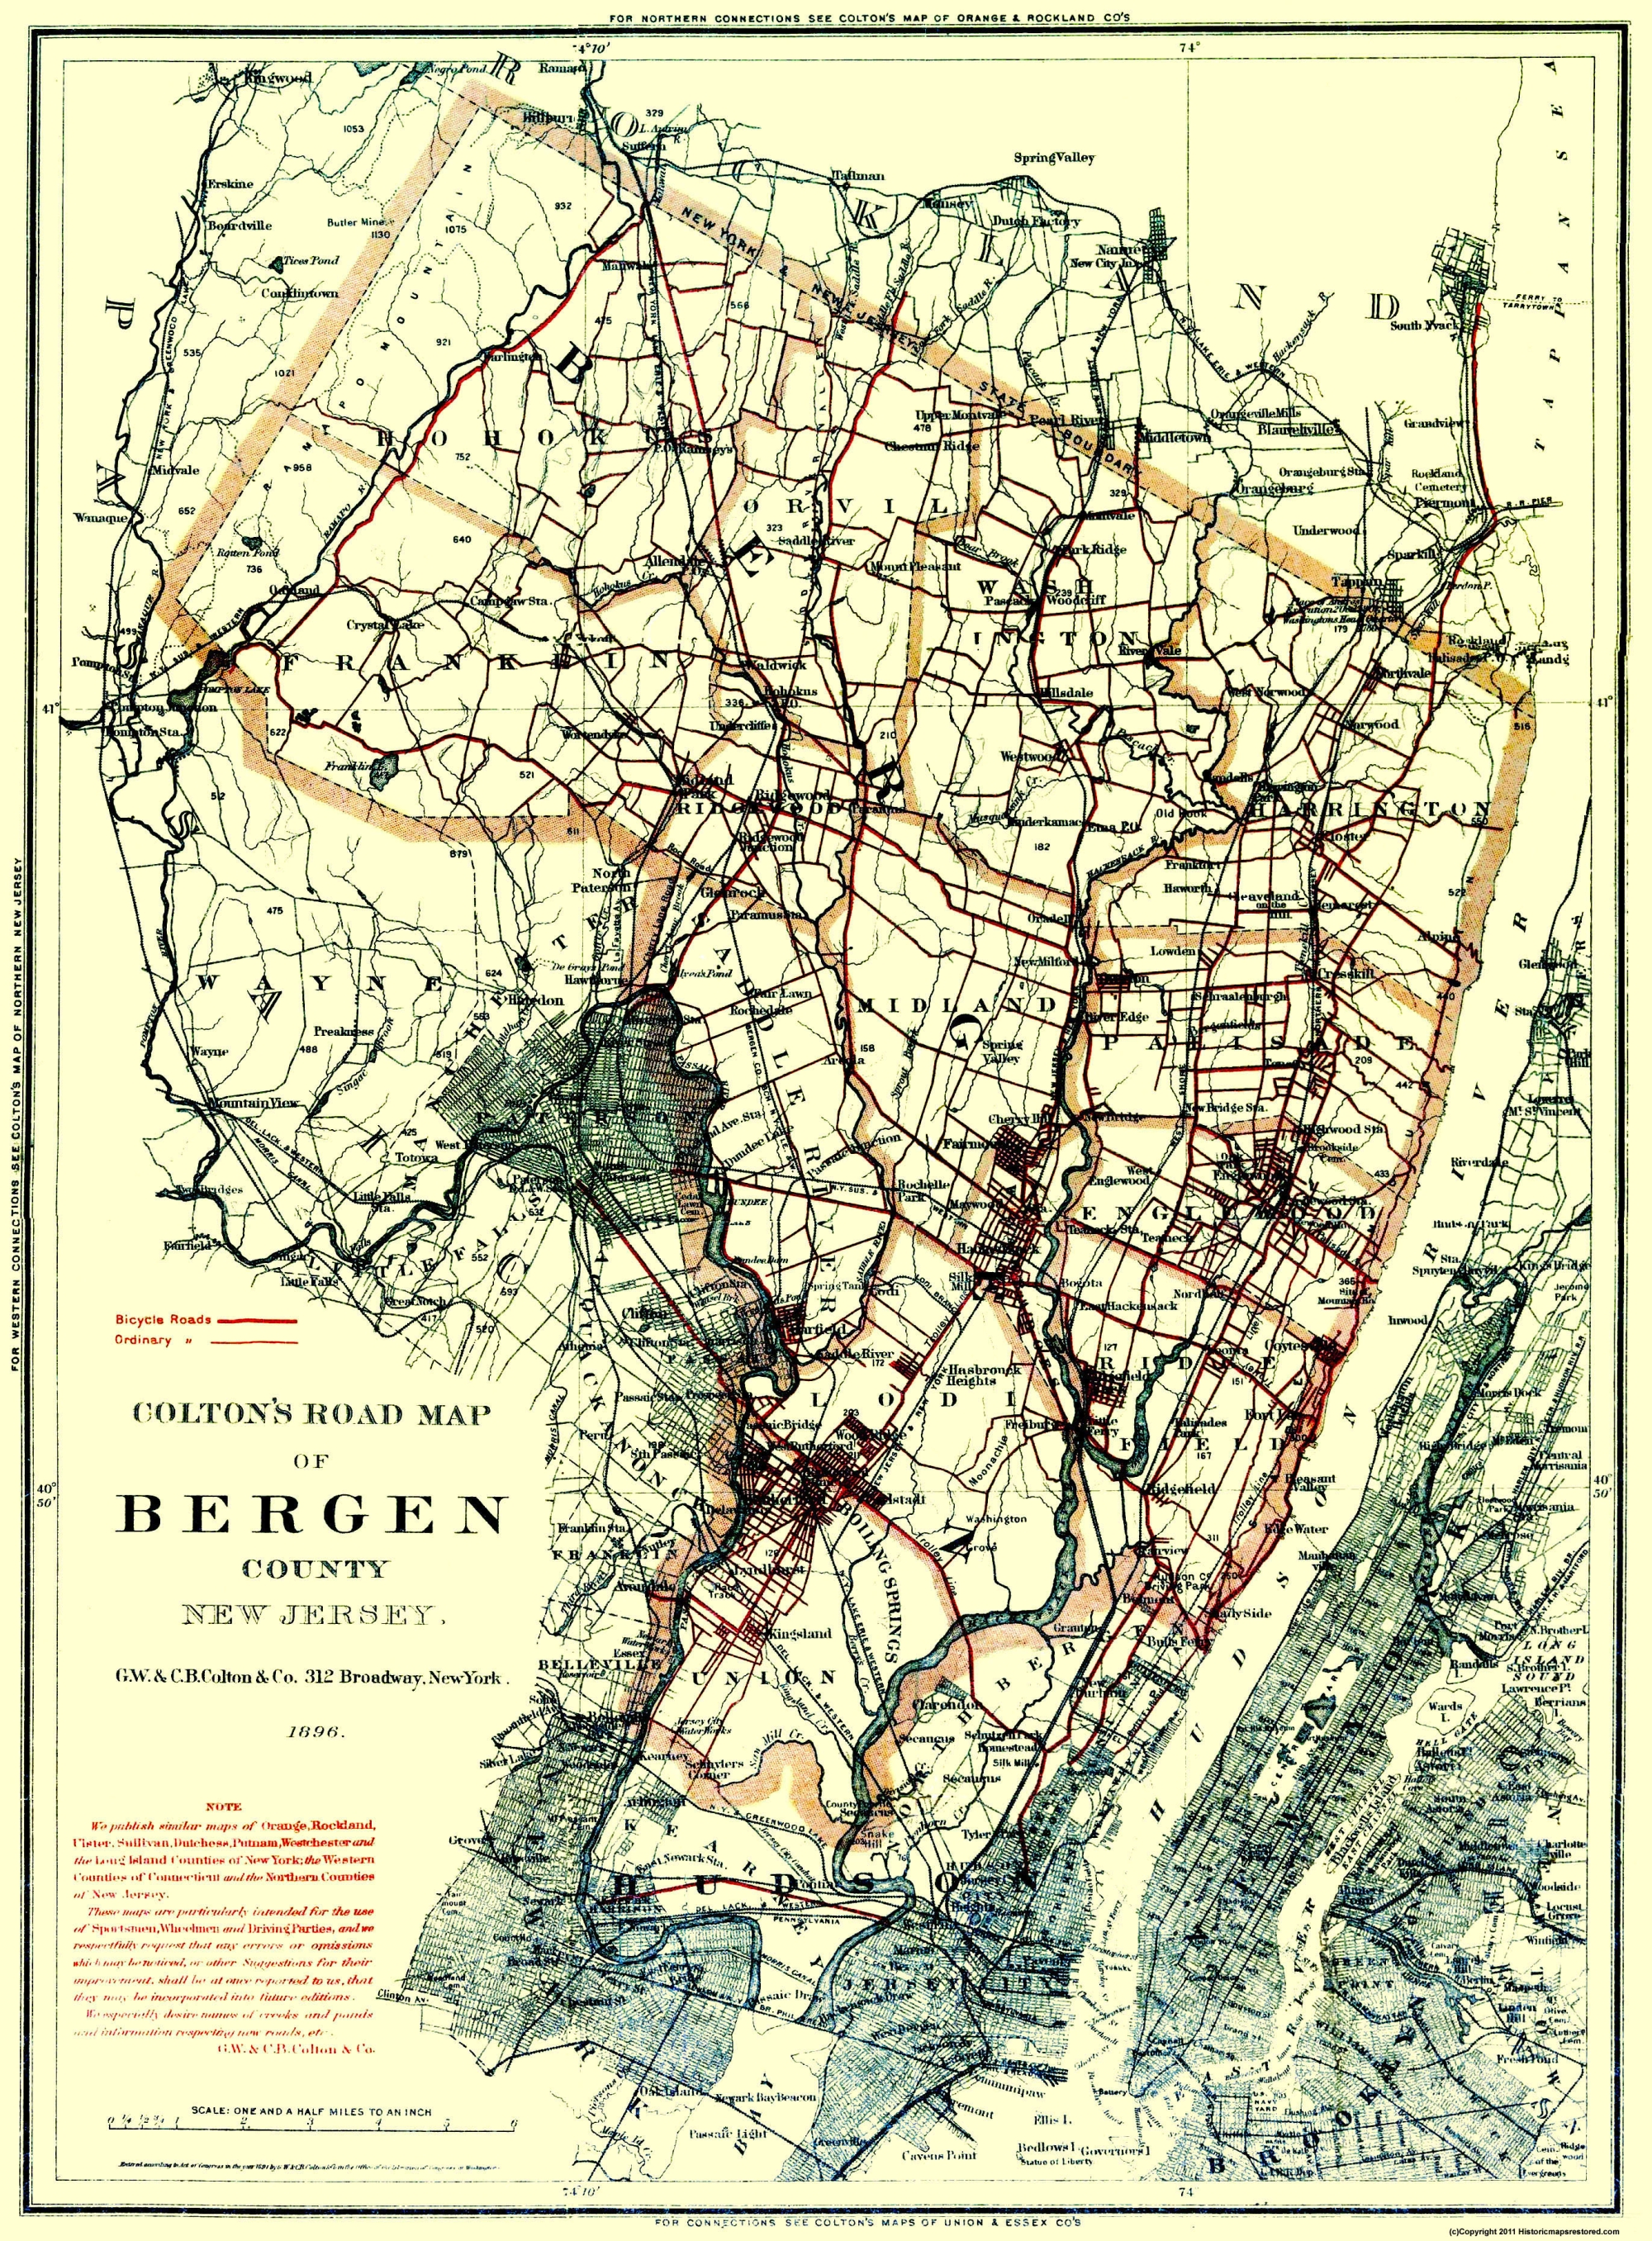 Old County Map Bergen New Jersey 1896